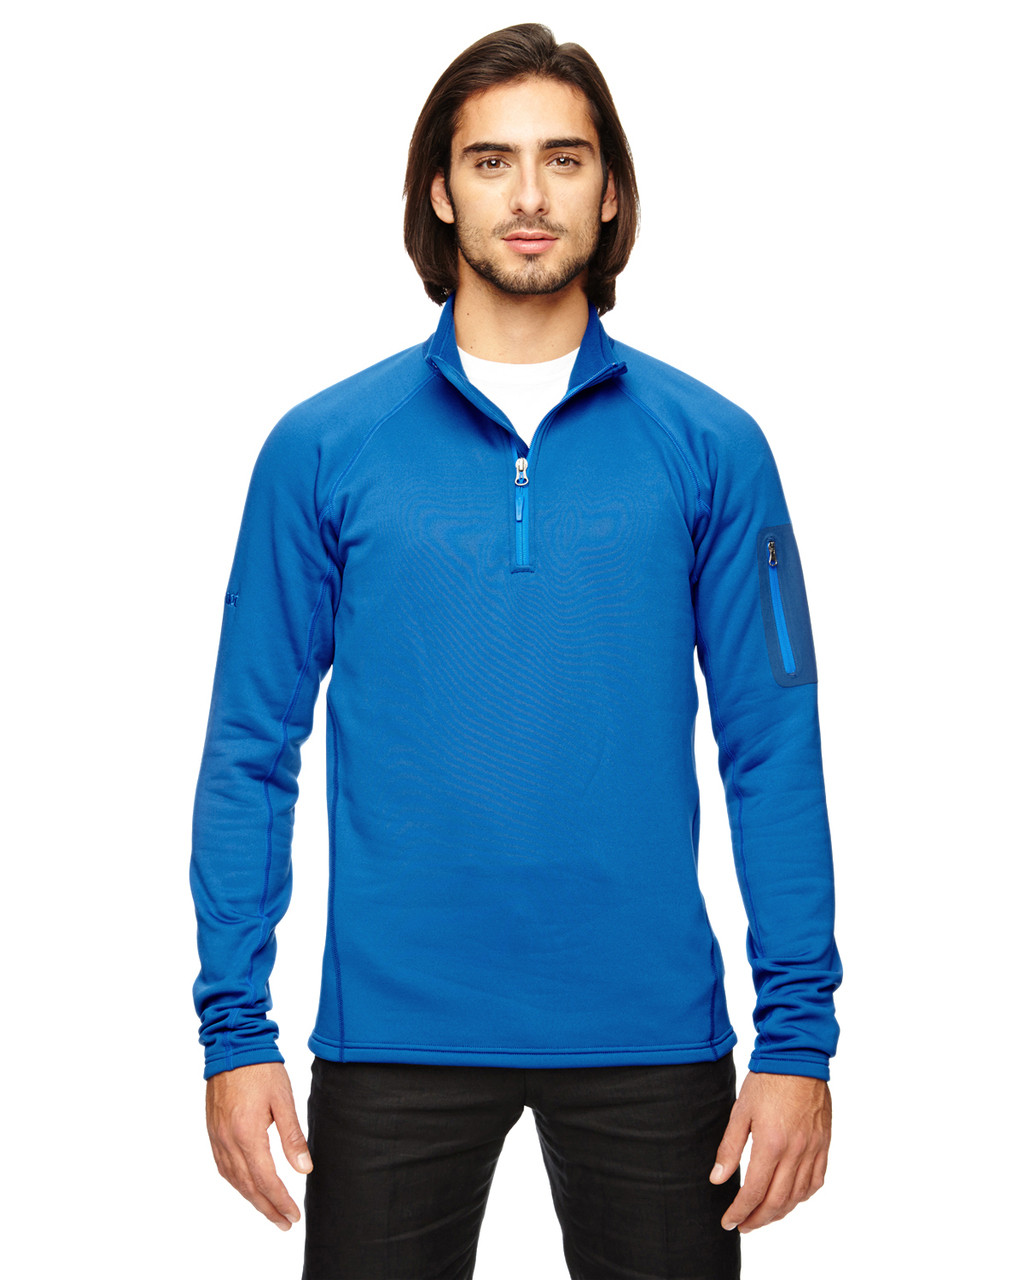 Blue Sapph - 80890 Marmot Men's Stretch Fleece Half-Zip Sweatshirt | BlankClothing.ca